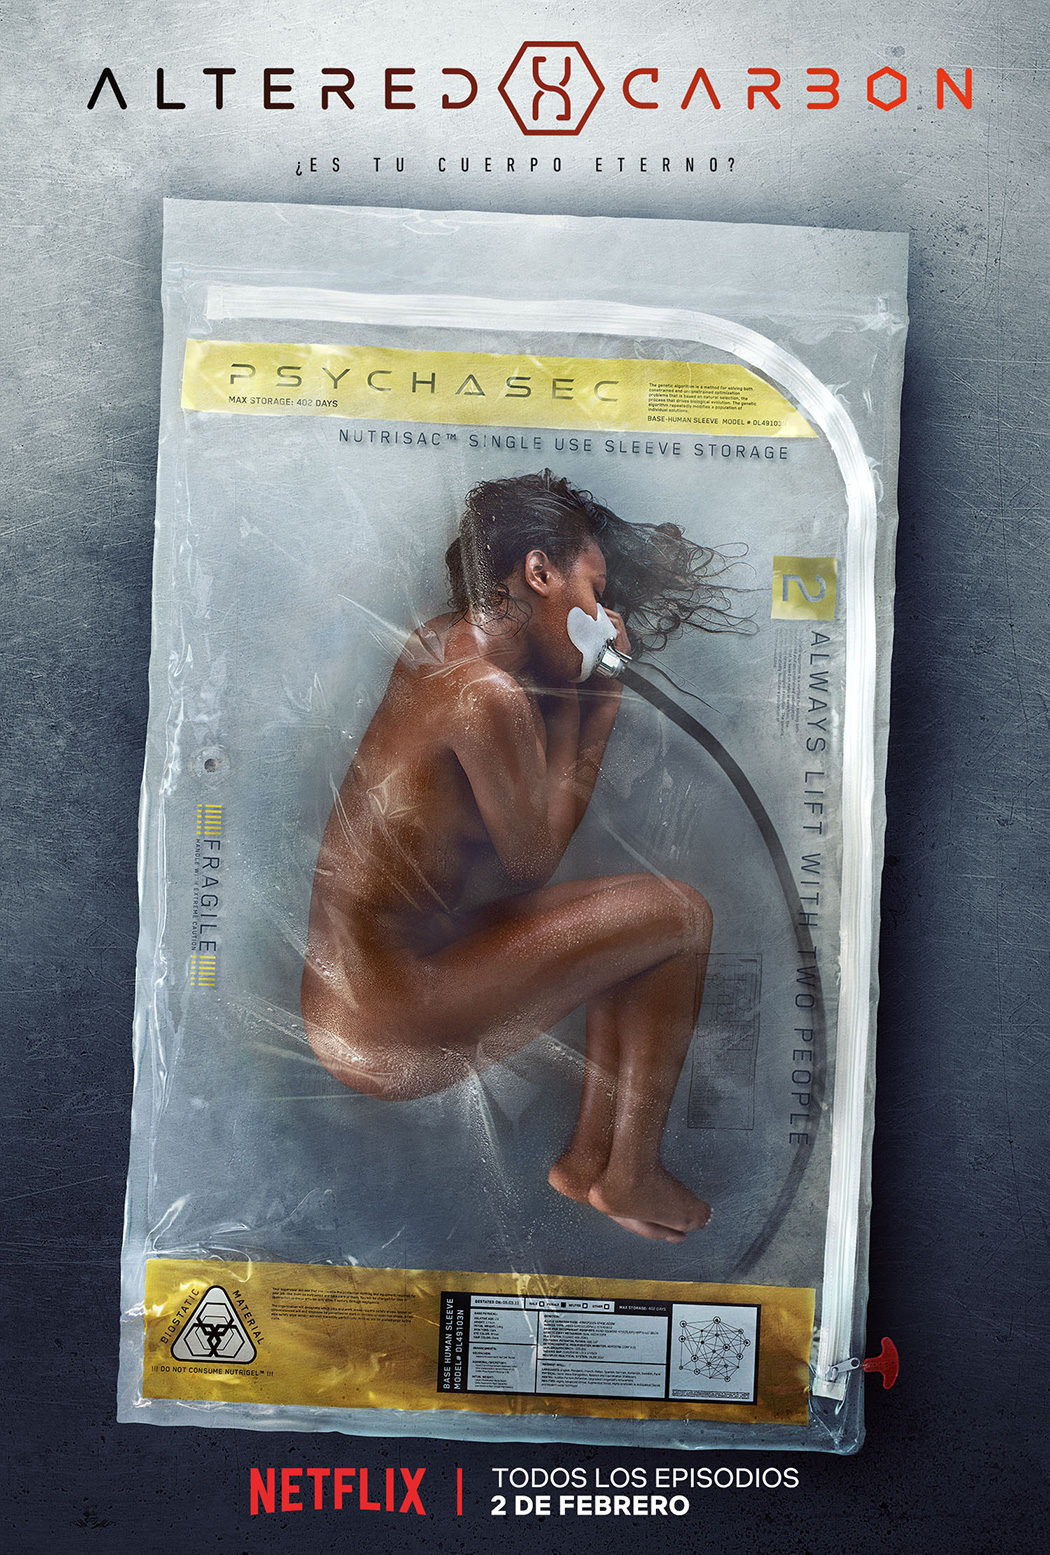 Póster #1 de Altered Carbon